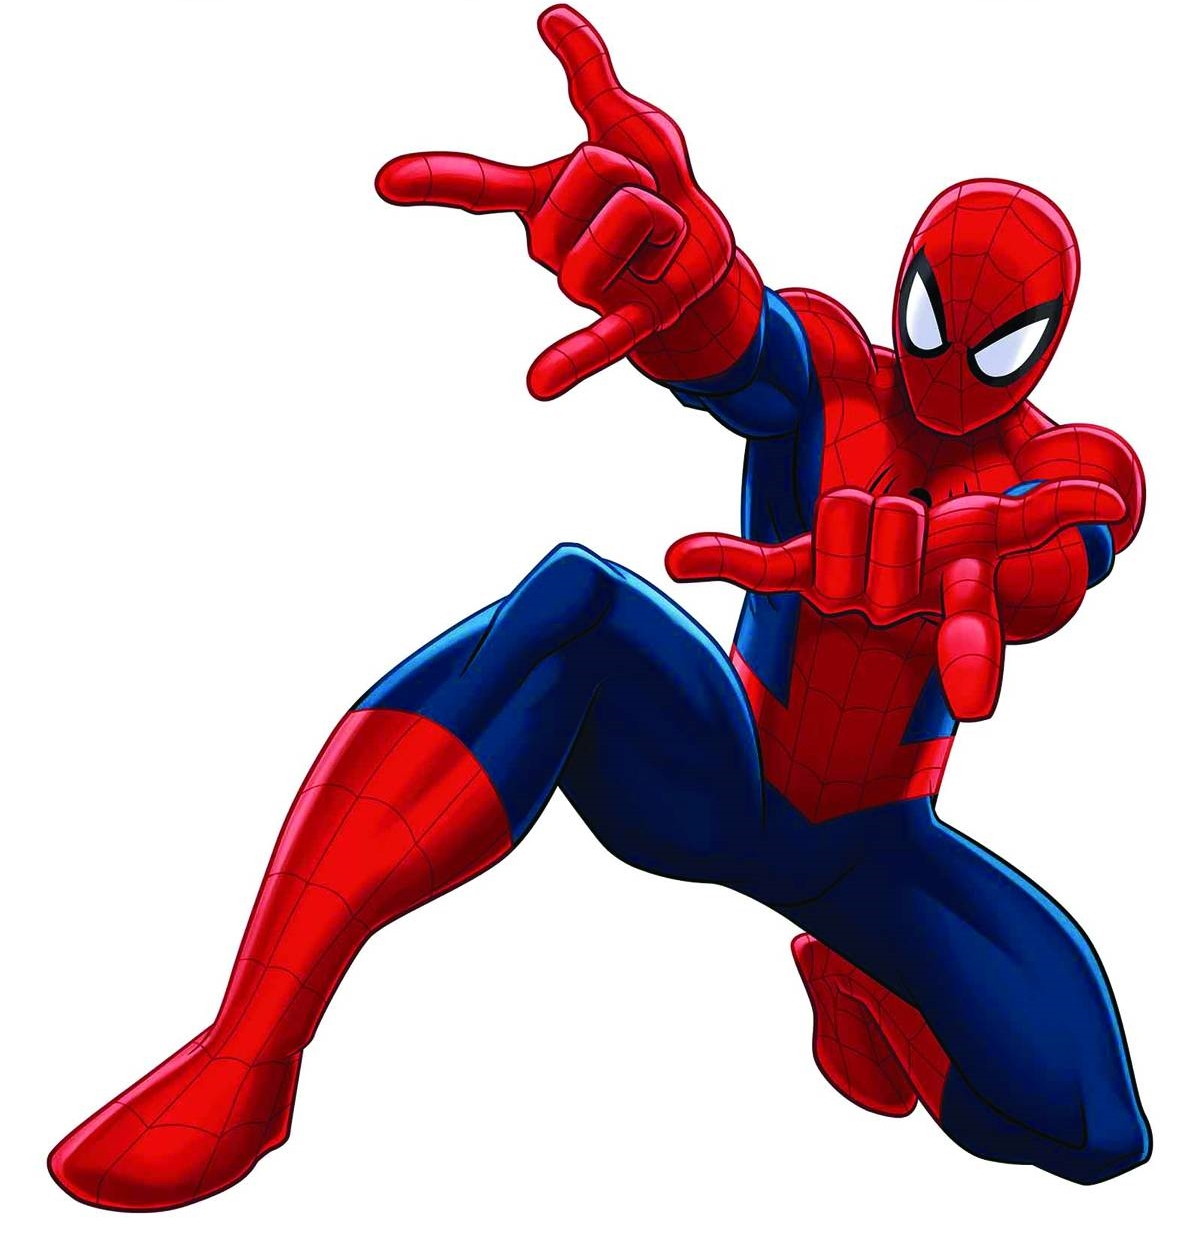 spider man spider man Merry Christmas Clip Art Symbiote Spider-Man